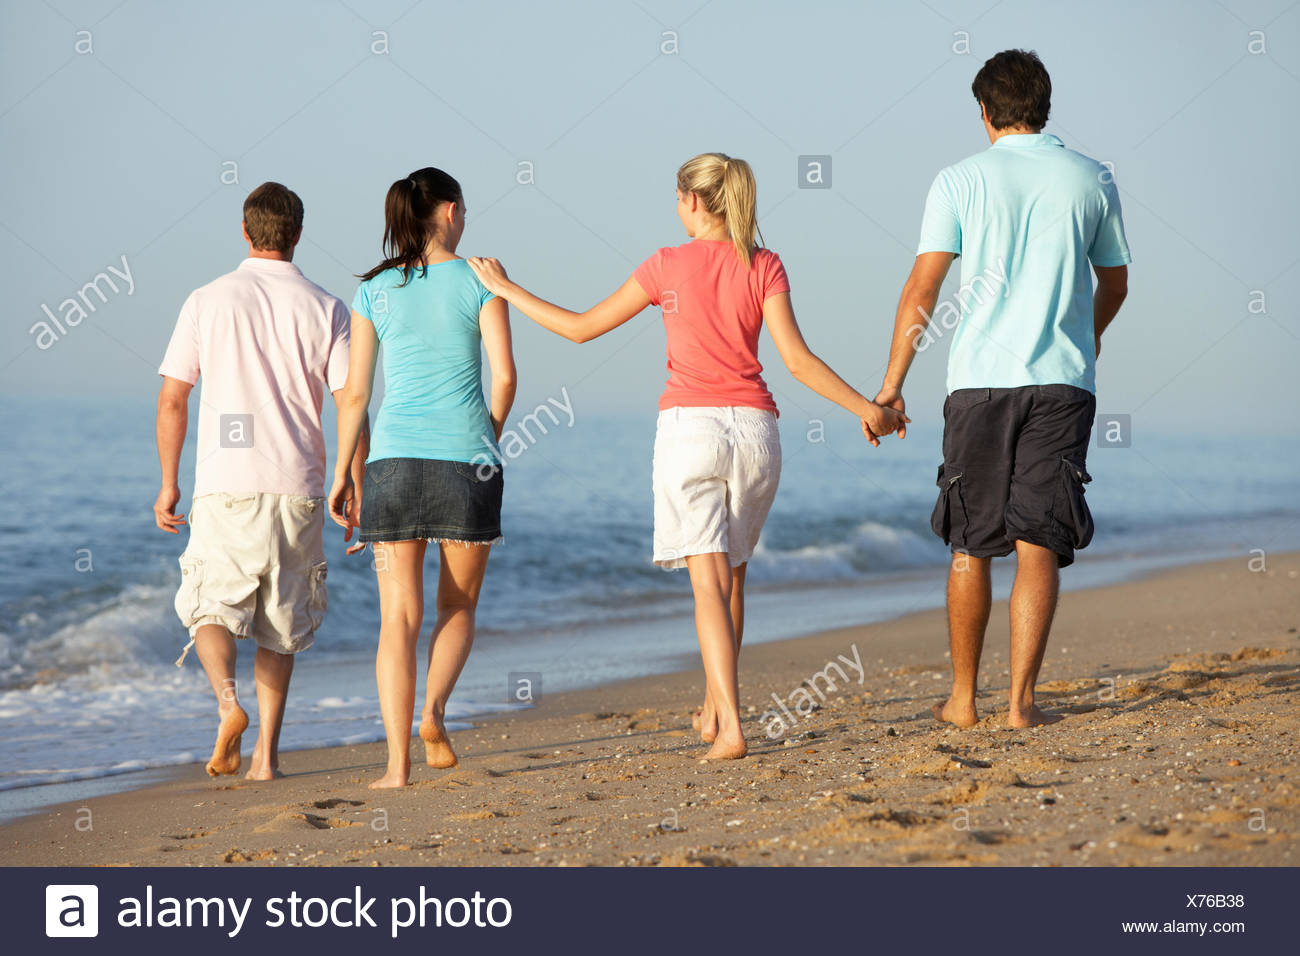 woman,walk,walking,beach,Lifestyle,Caucasian,Female,twenties,20s,outdoors,beach,enjoying,relaxed,relaxing,holiday,vacation,full Length,people,person,vertical,happy,smiling,woman,seaside,ocean,holiday,vacation,shore,shoreline,sandy,looking,copy space - Stock Image